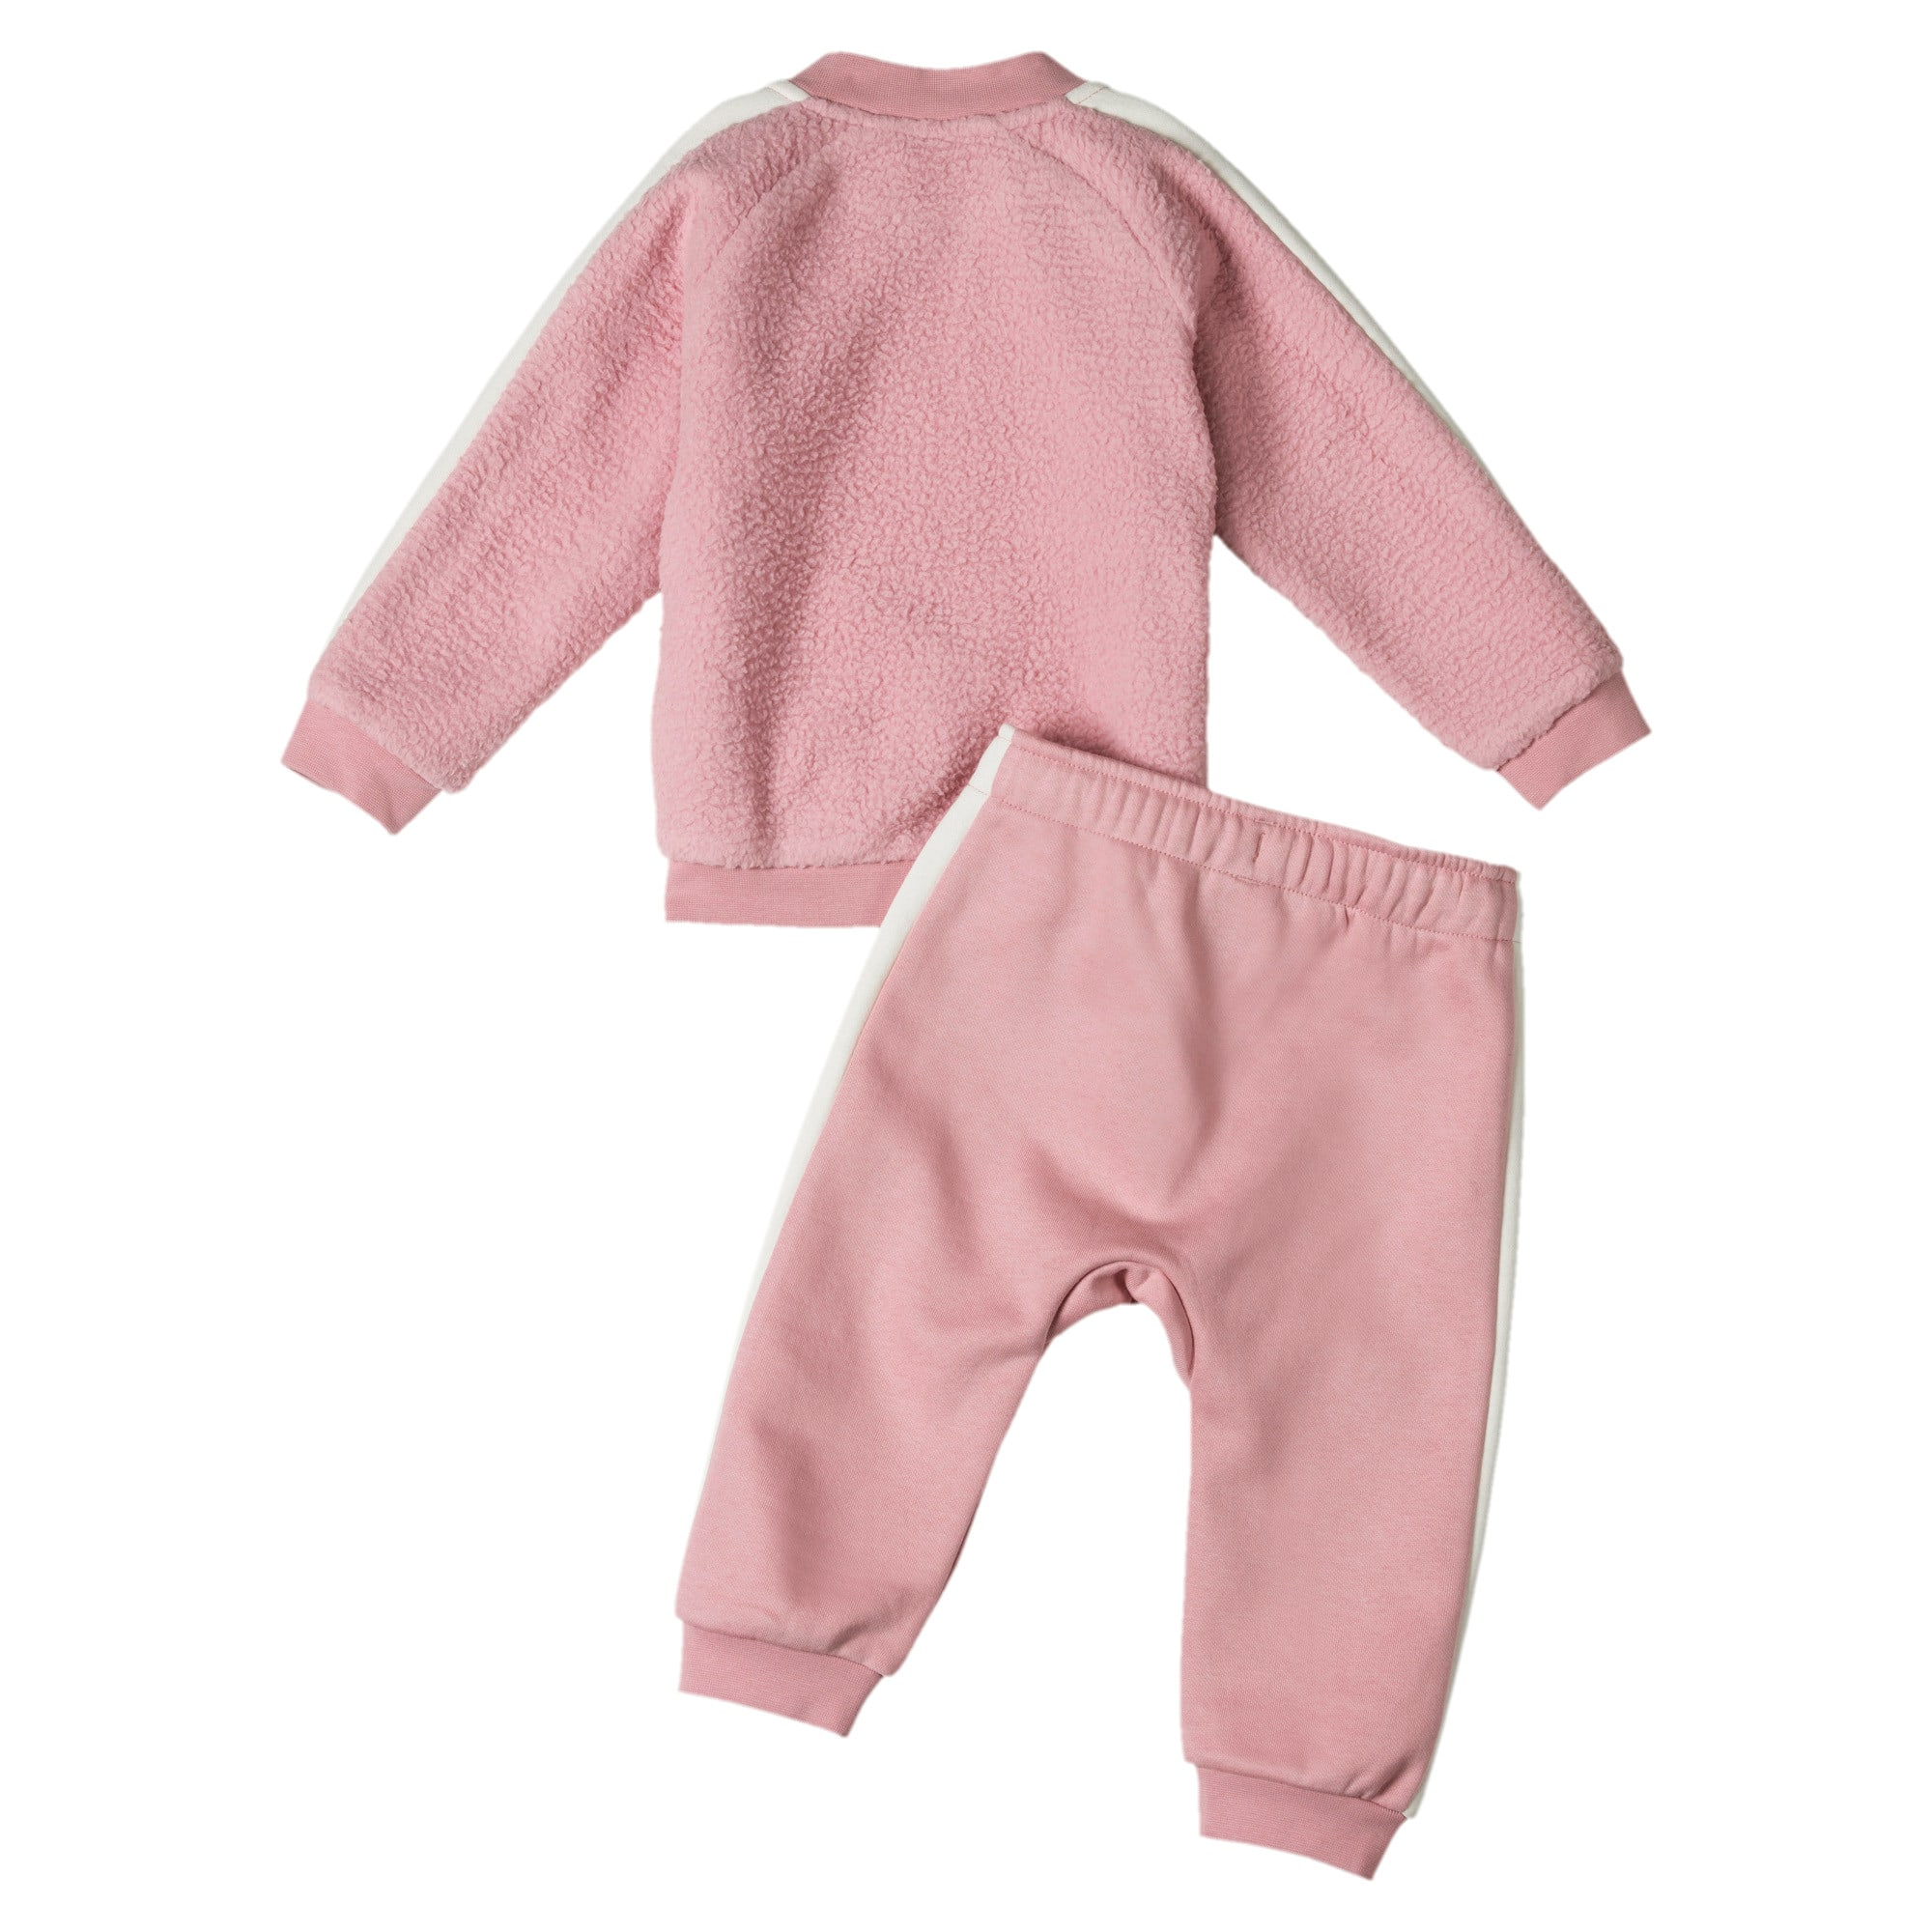 Thumbnail 4 of Monster Infant + Toddler Two-Piece Set, Bridal Rose, medium